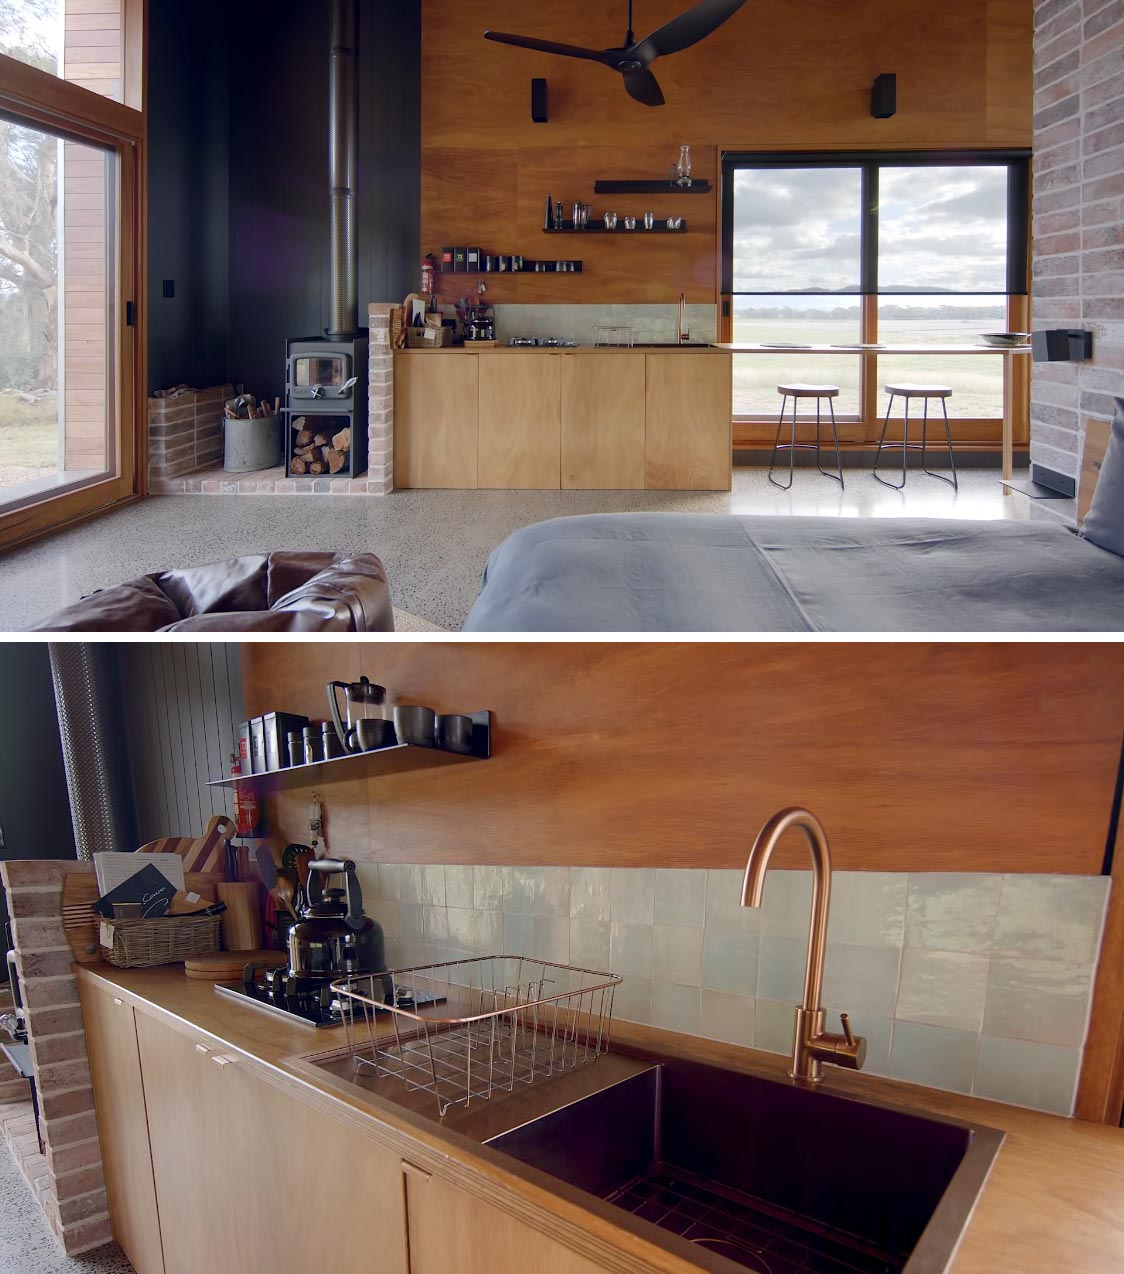 The minimally designed kitchen in this off-grid tiny house includes a wood burning fireplace, a small gas cooktop, sink, small fridge, and floating black shelves.